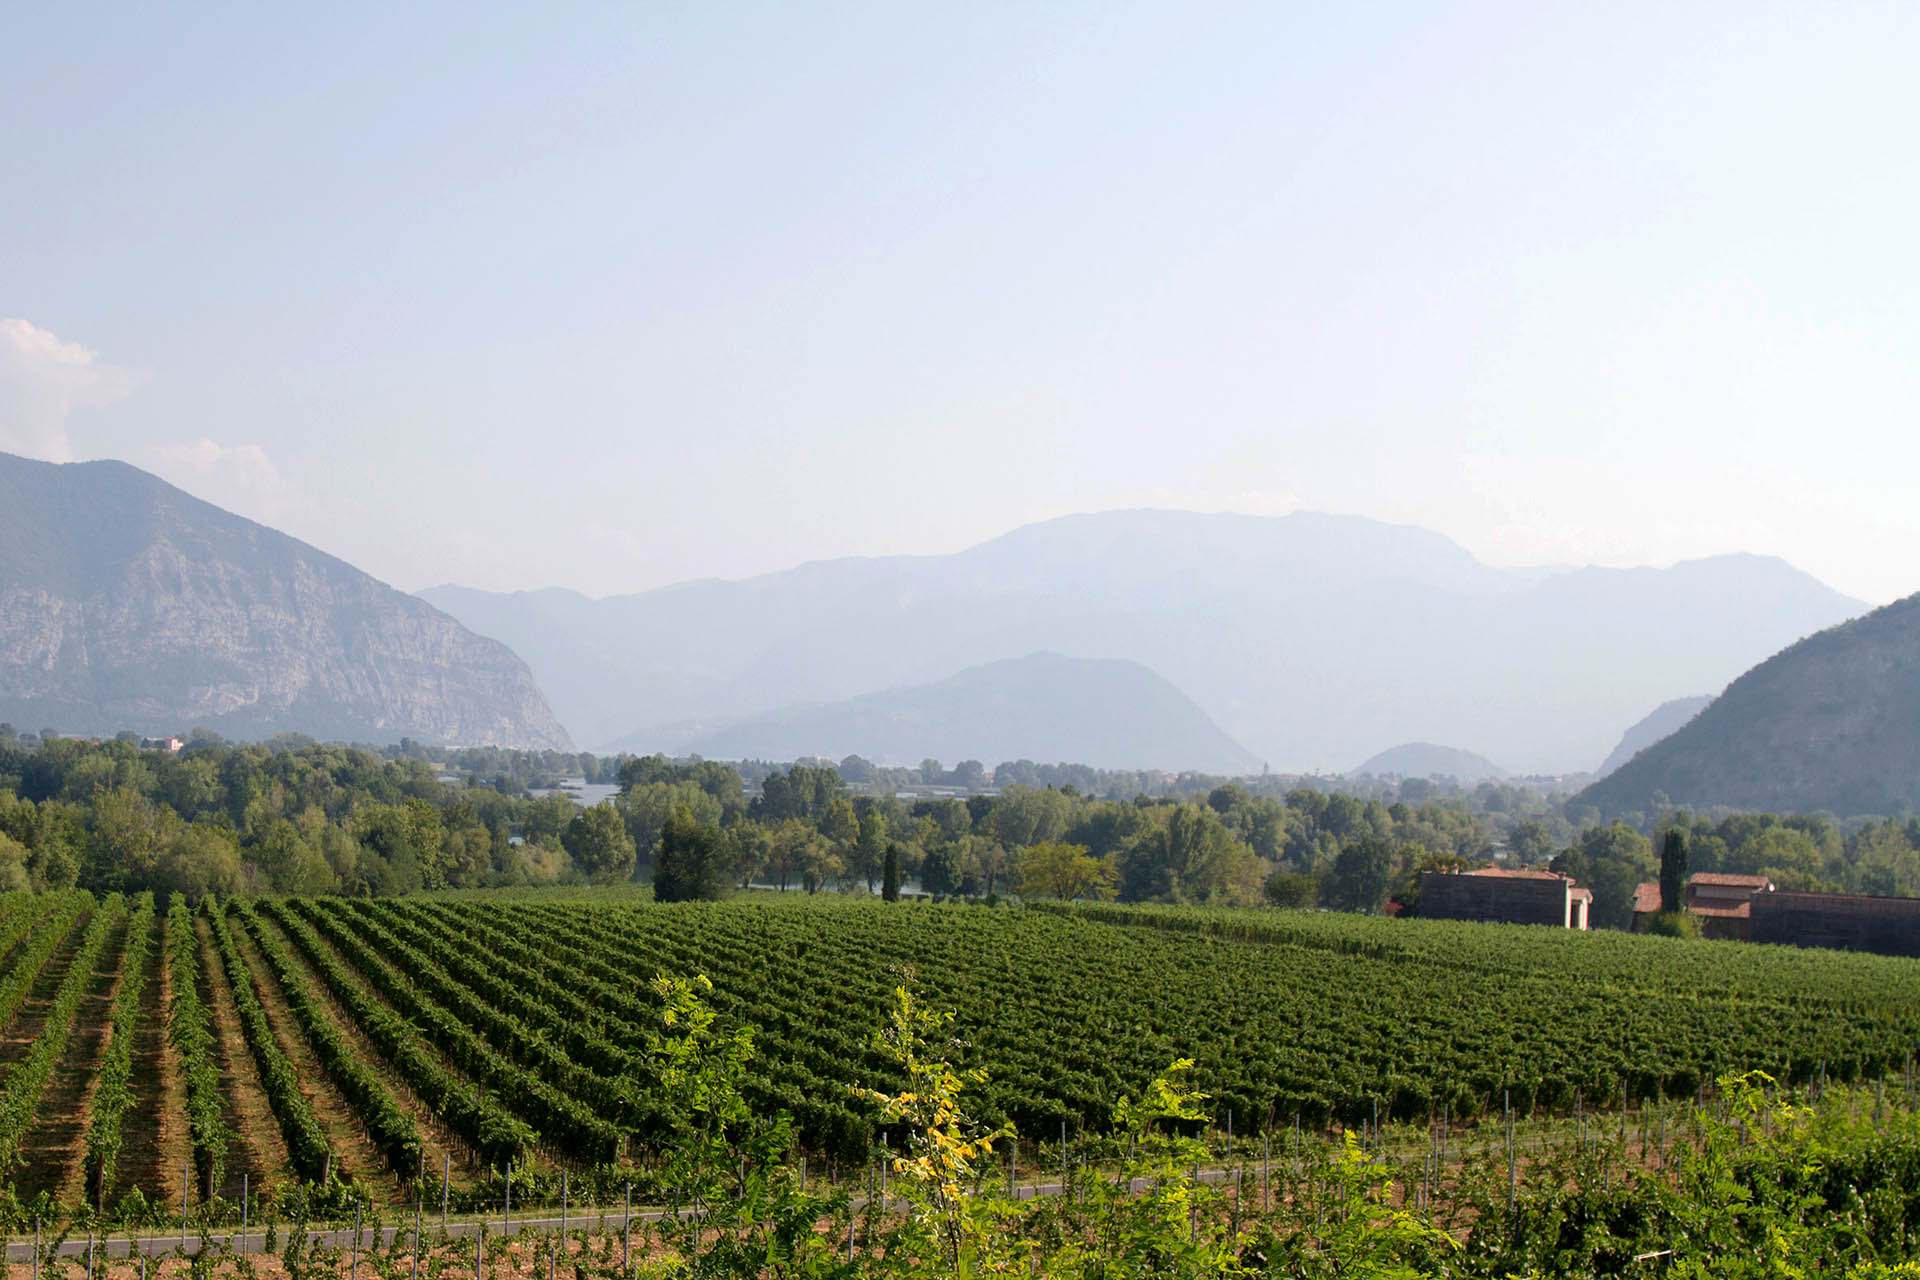 franciacorta wine vineyard salt and wind trip lombardy aida mollenkamp bitesee culinary trips